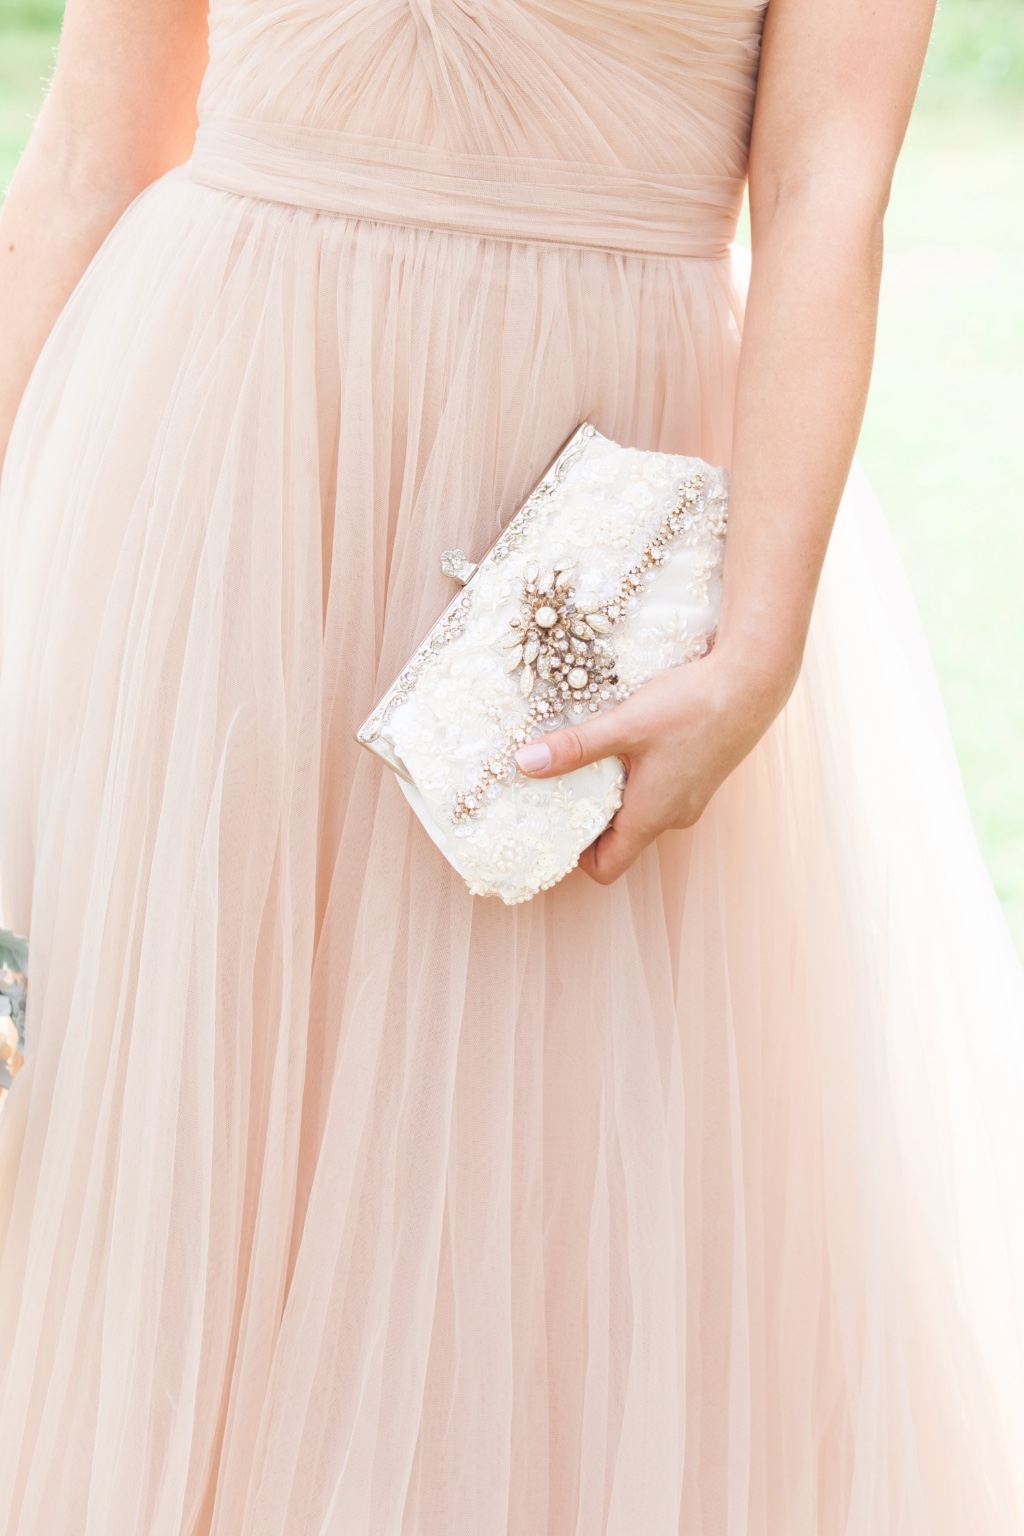 Utterly glamorous one of a kind bridal clutches.